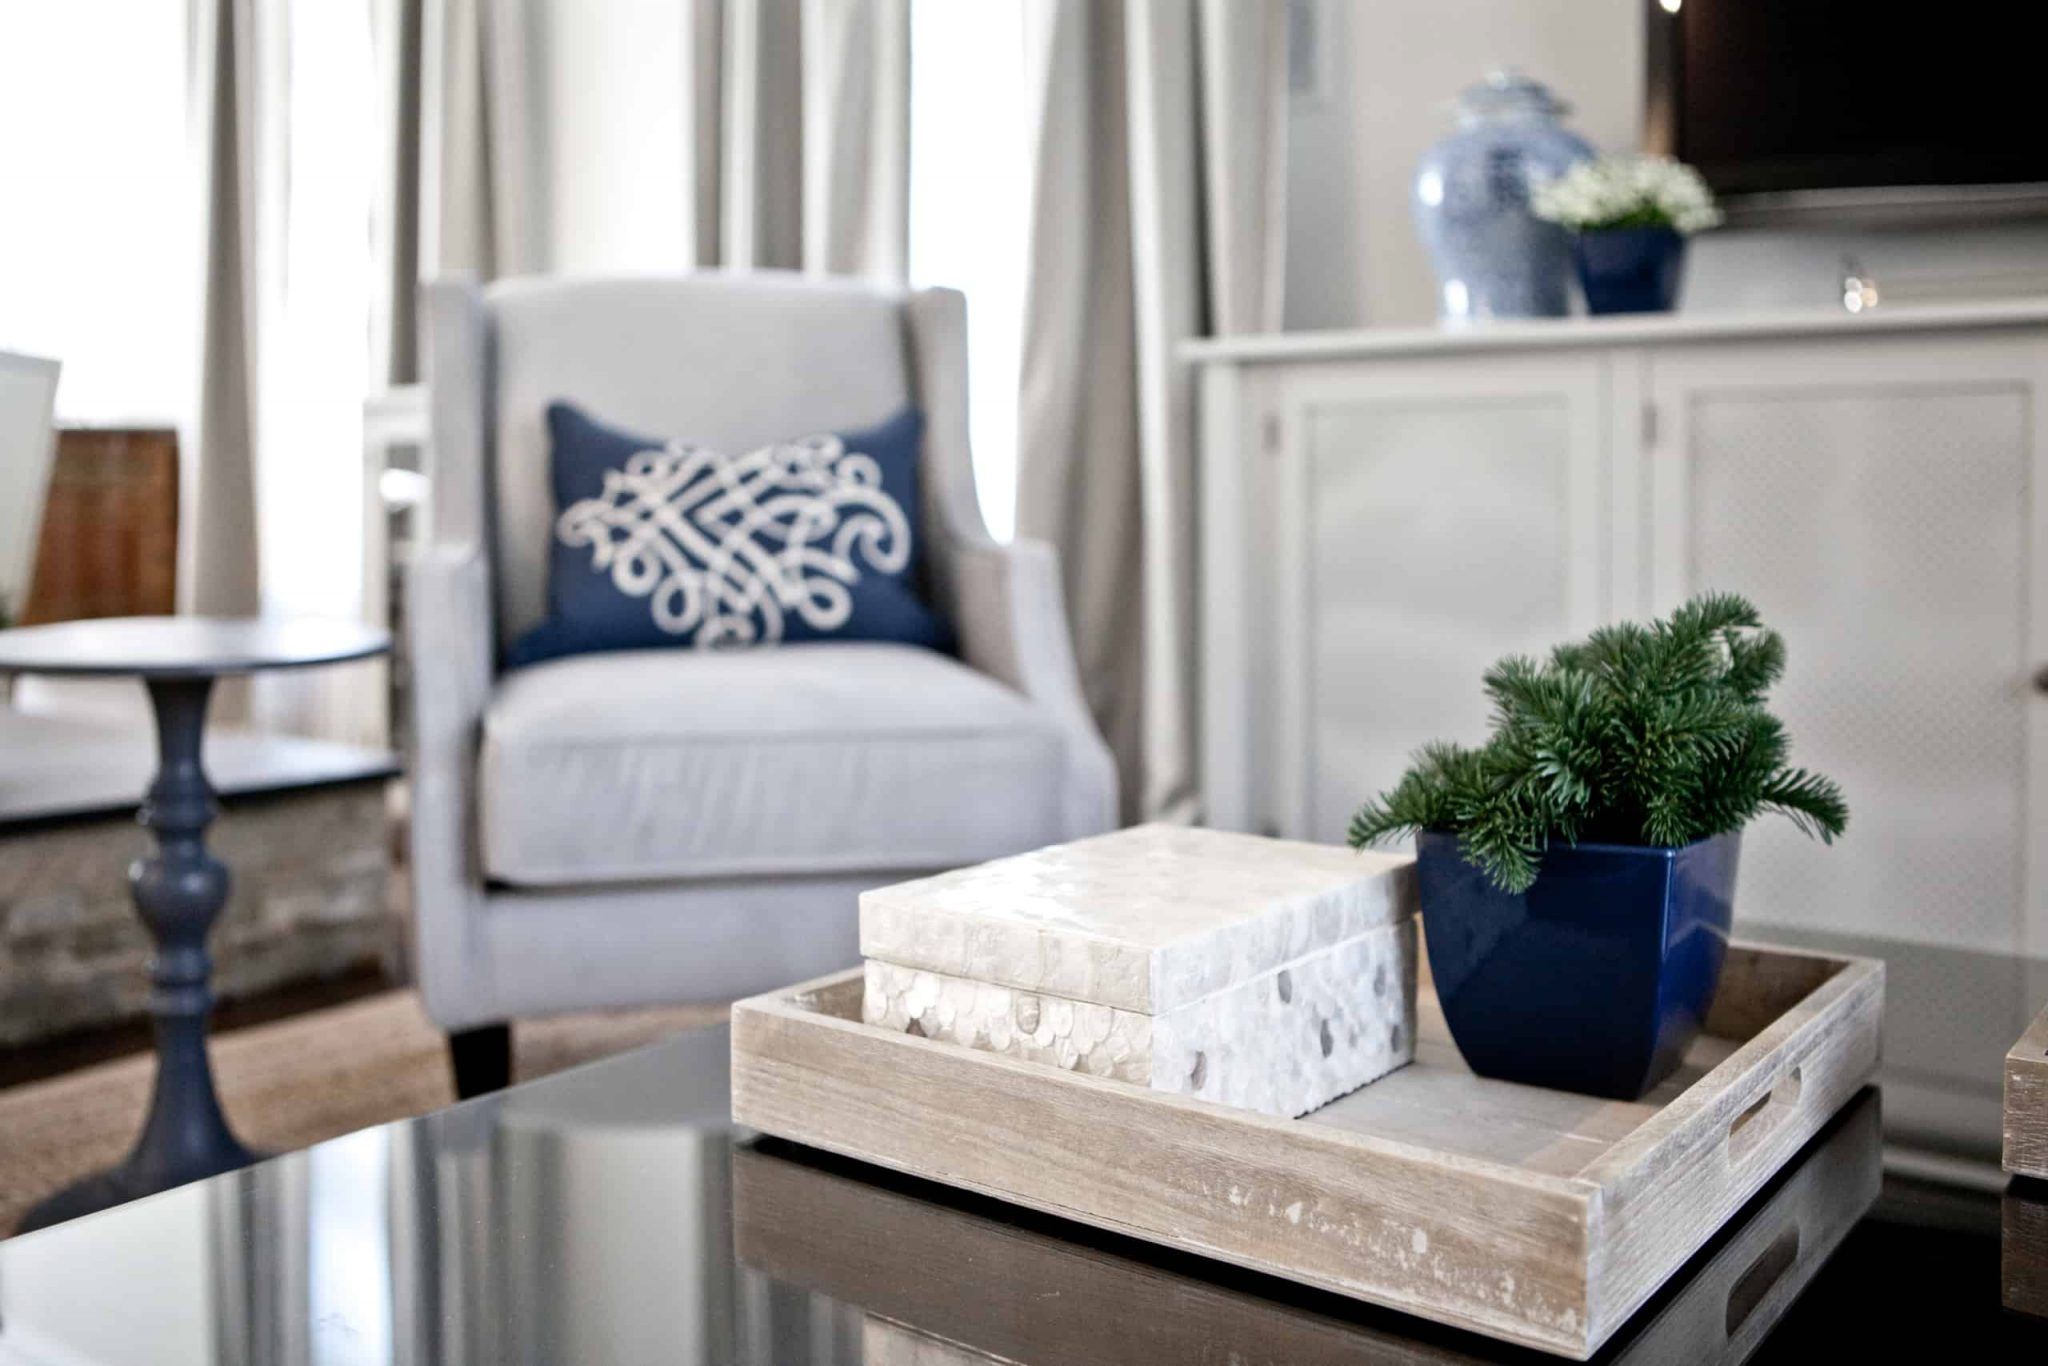 Wooden decorative tray on a black coffee table